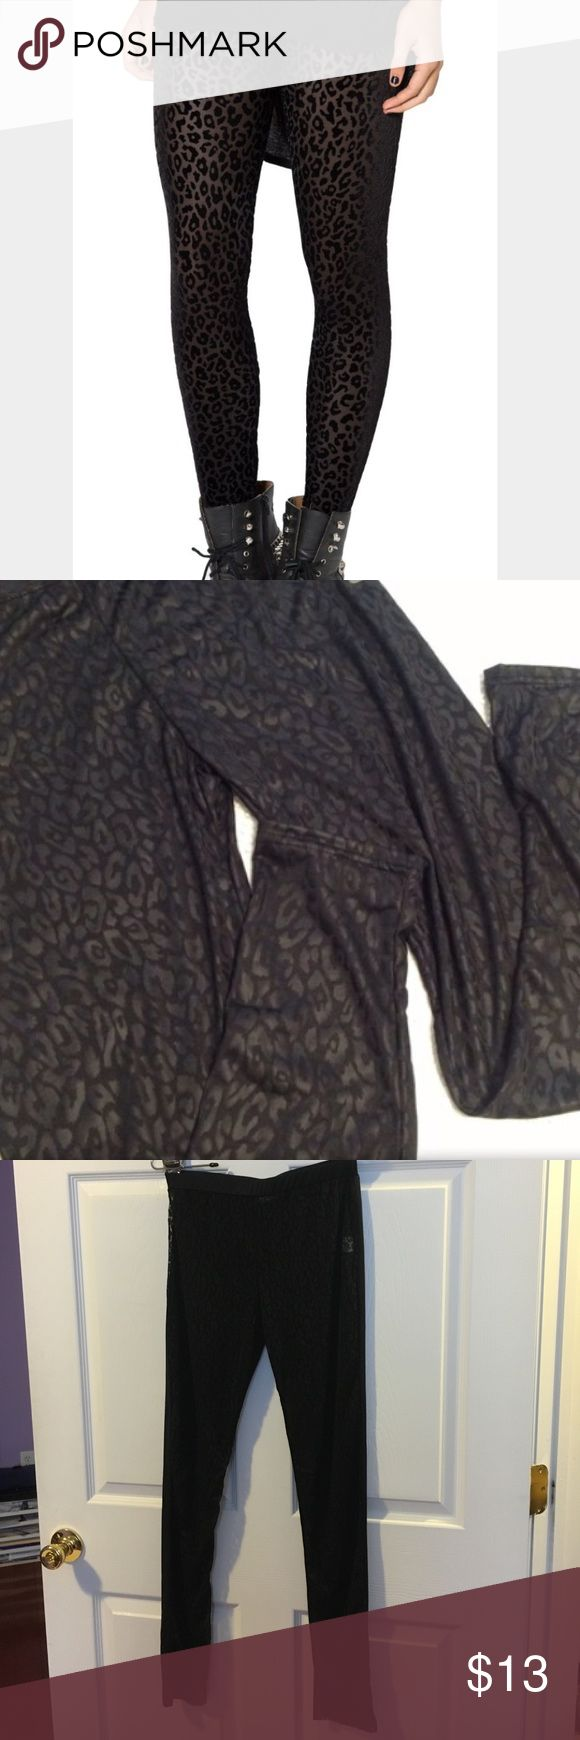 Sheer cheetah leggings Black sheer cheetah leggings. I have them is sizes small and medium. Boutique Pants Leggings